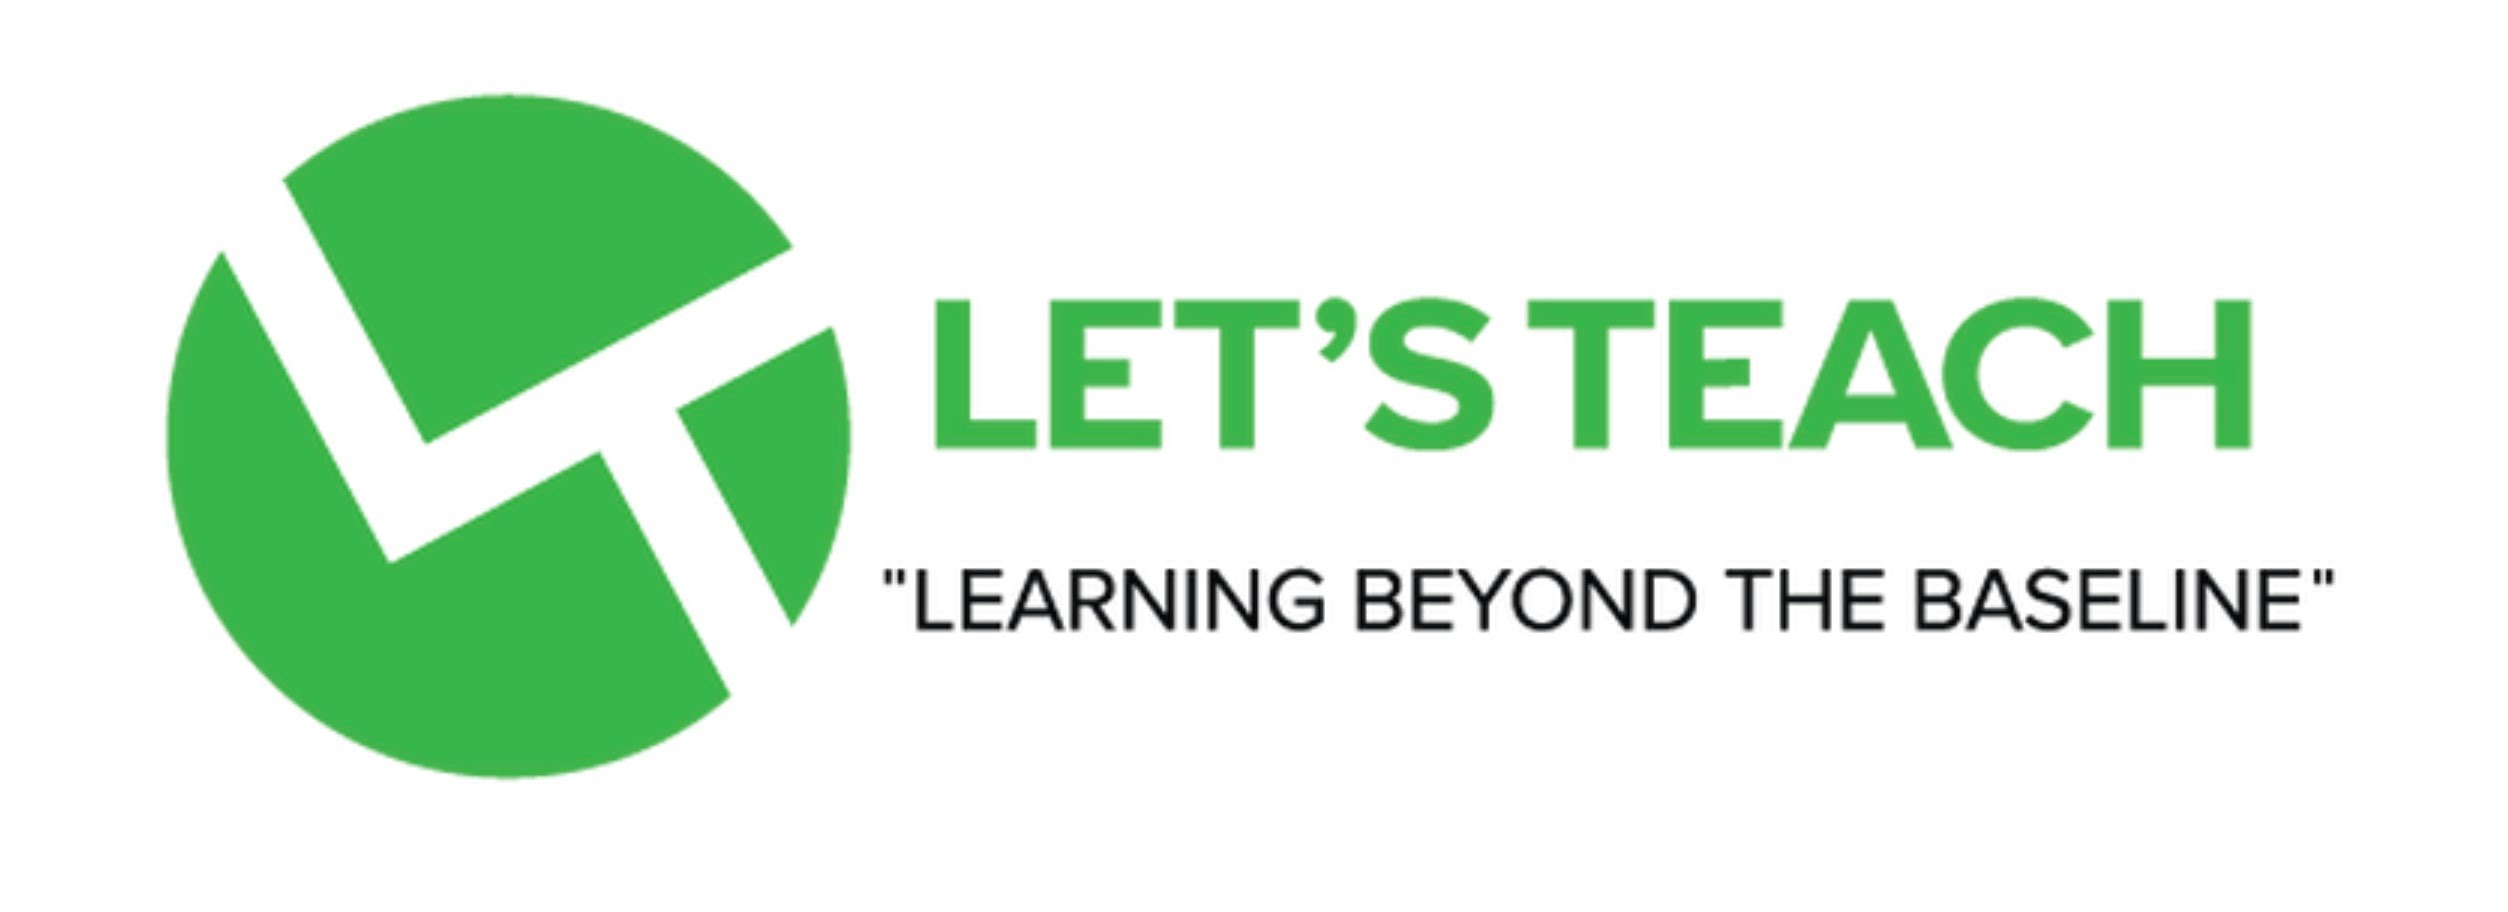 http://lets-teach.org